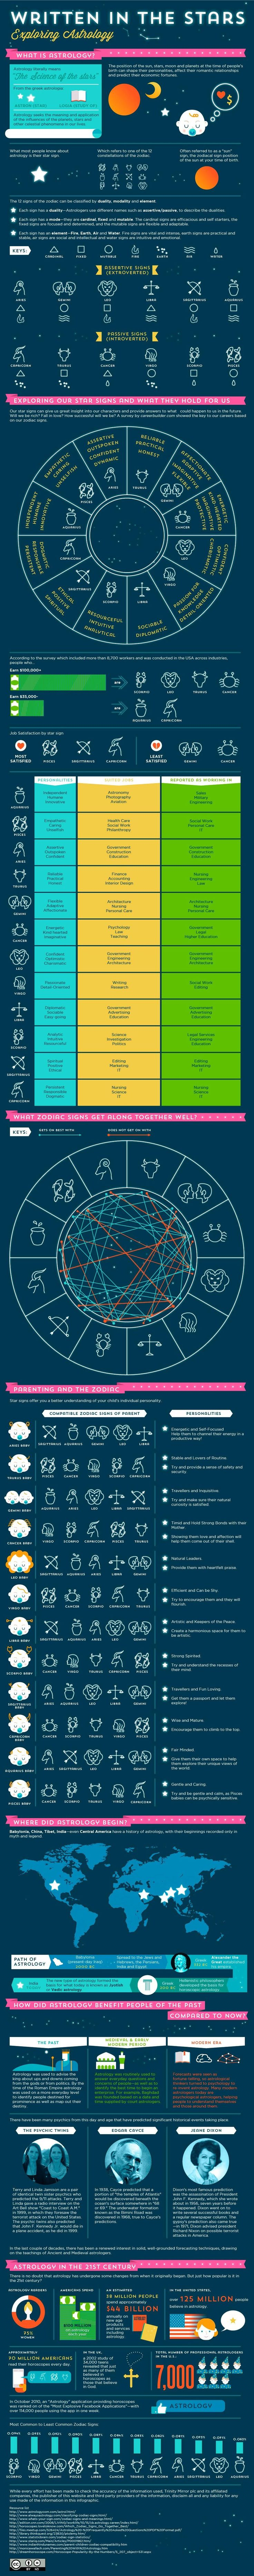 The 25 best astrology report ideas on pinterest astrology astrology 101 people from mirror horoscopes team compiled this infographic in an effort to give nvjuhfo Gallery